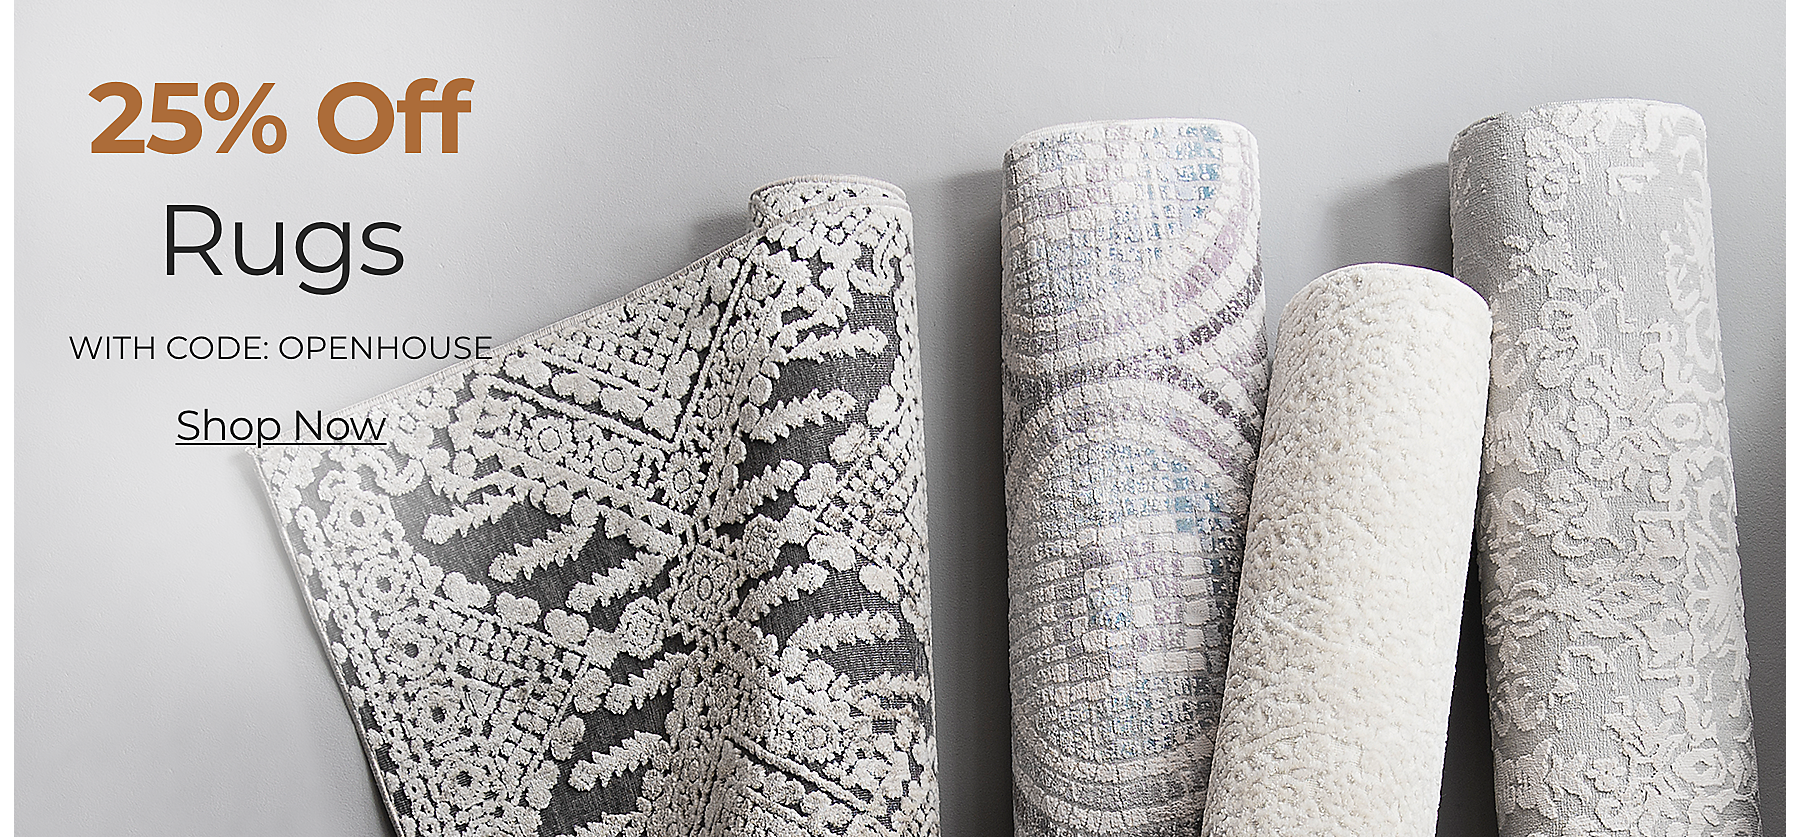 Rugs 25% Off with Code: OPENHOUSE Shop Now